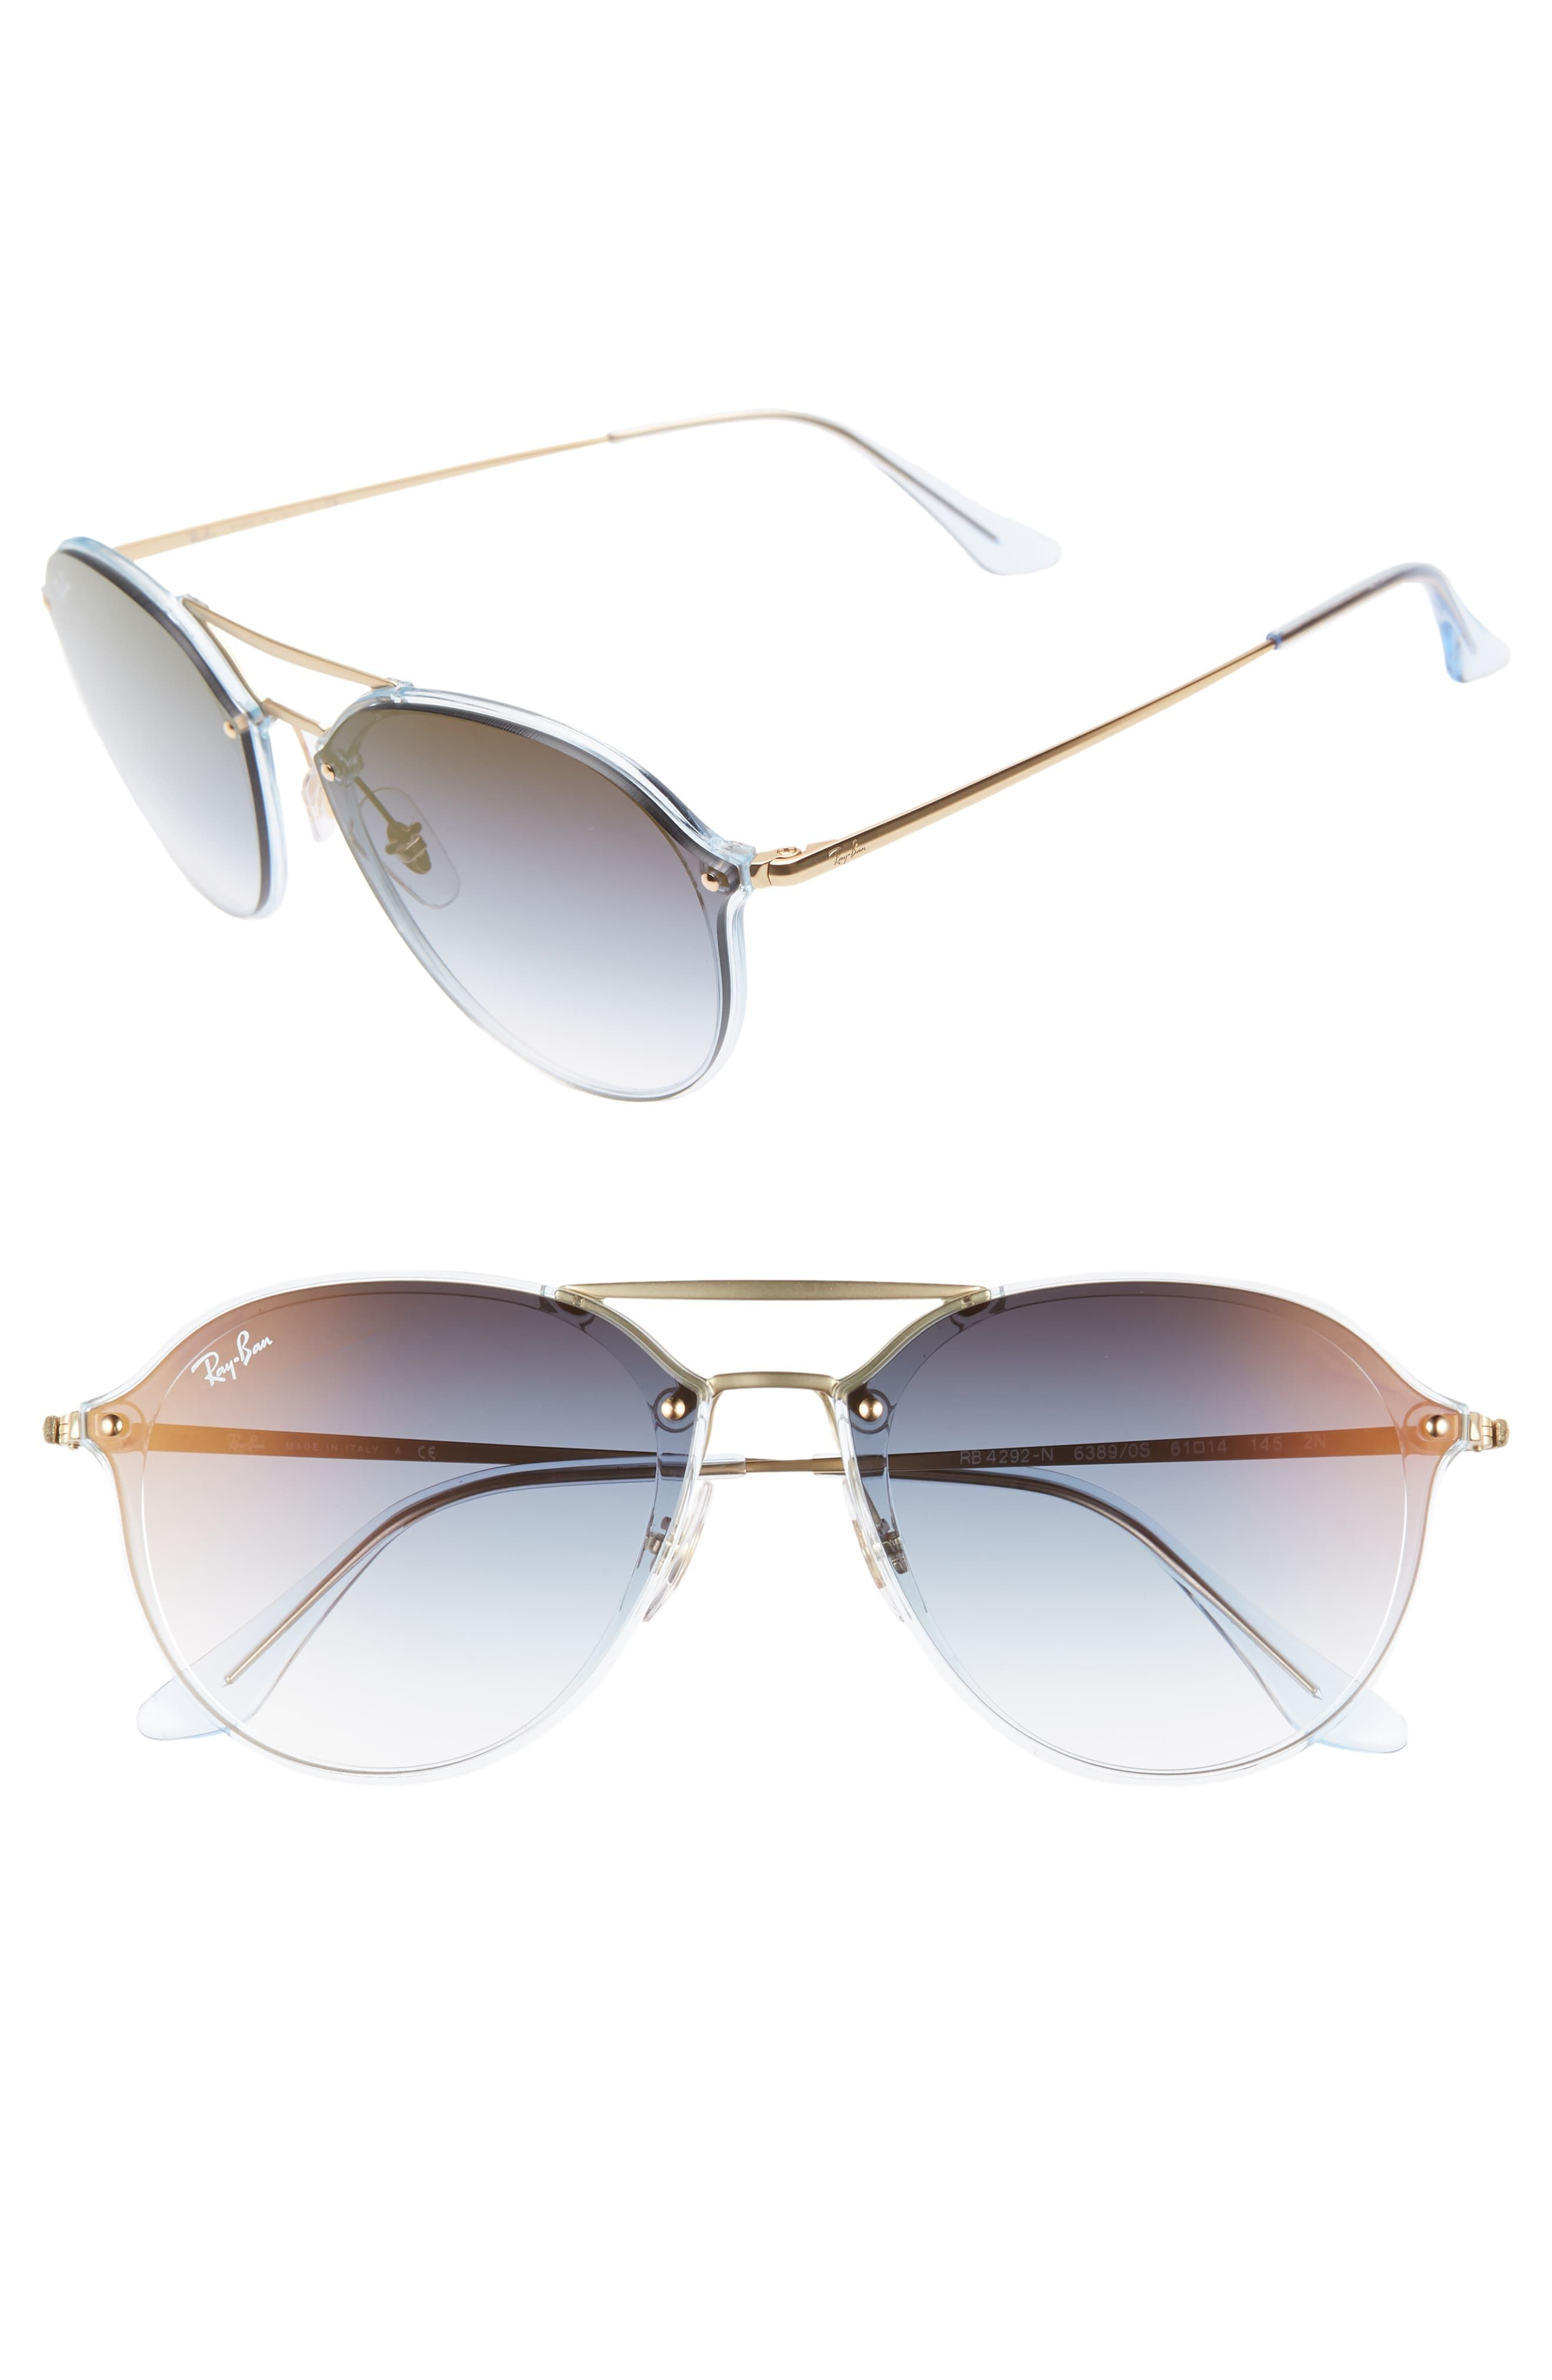 c4fa86386a25 Ray-Ban 61Mm Gradient Aviator Sunglasses - Gold/ Brown Gradient in ...